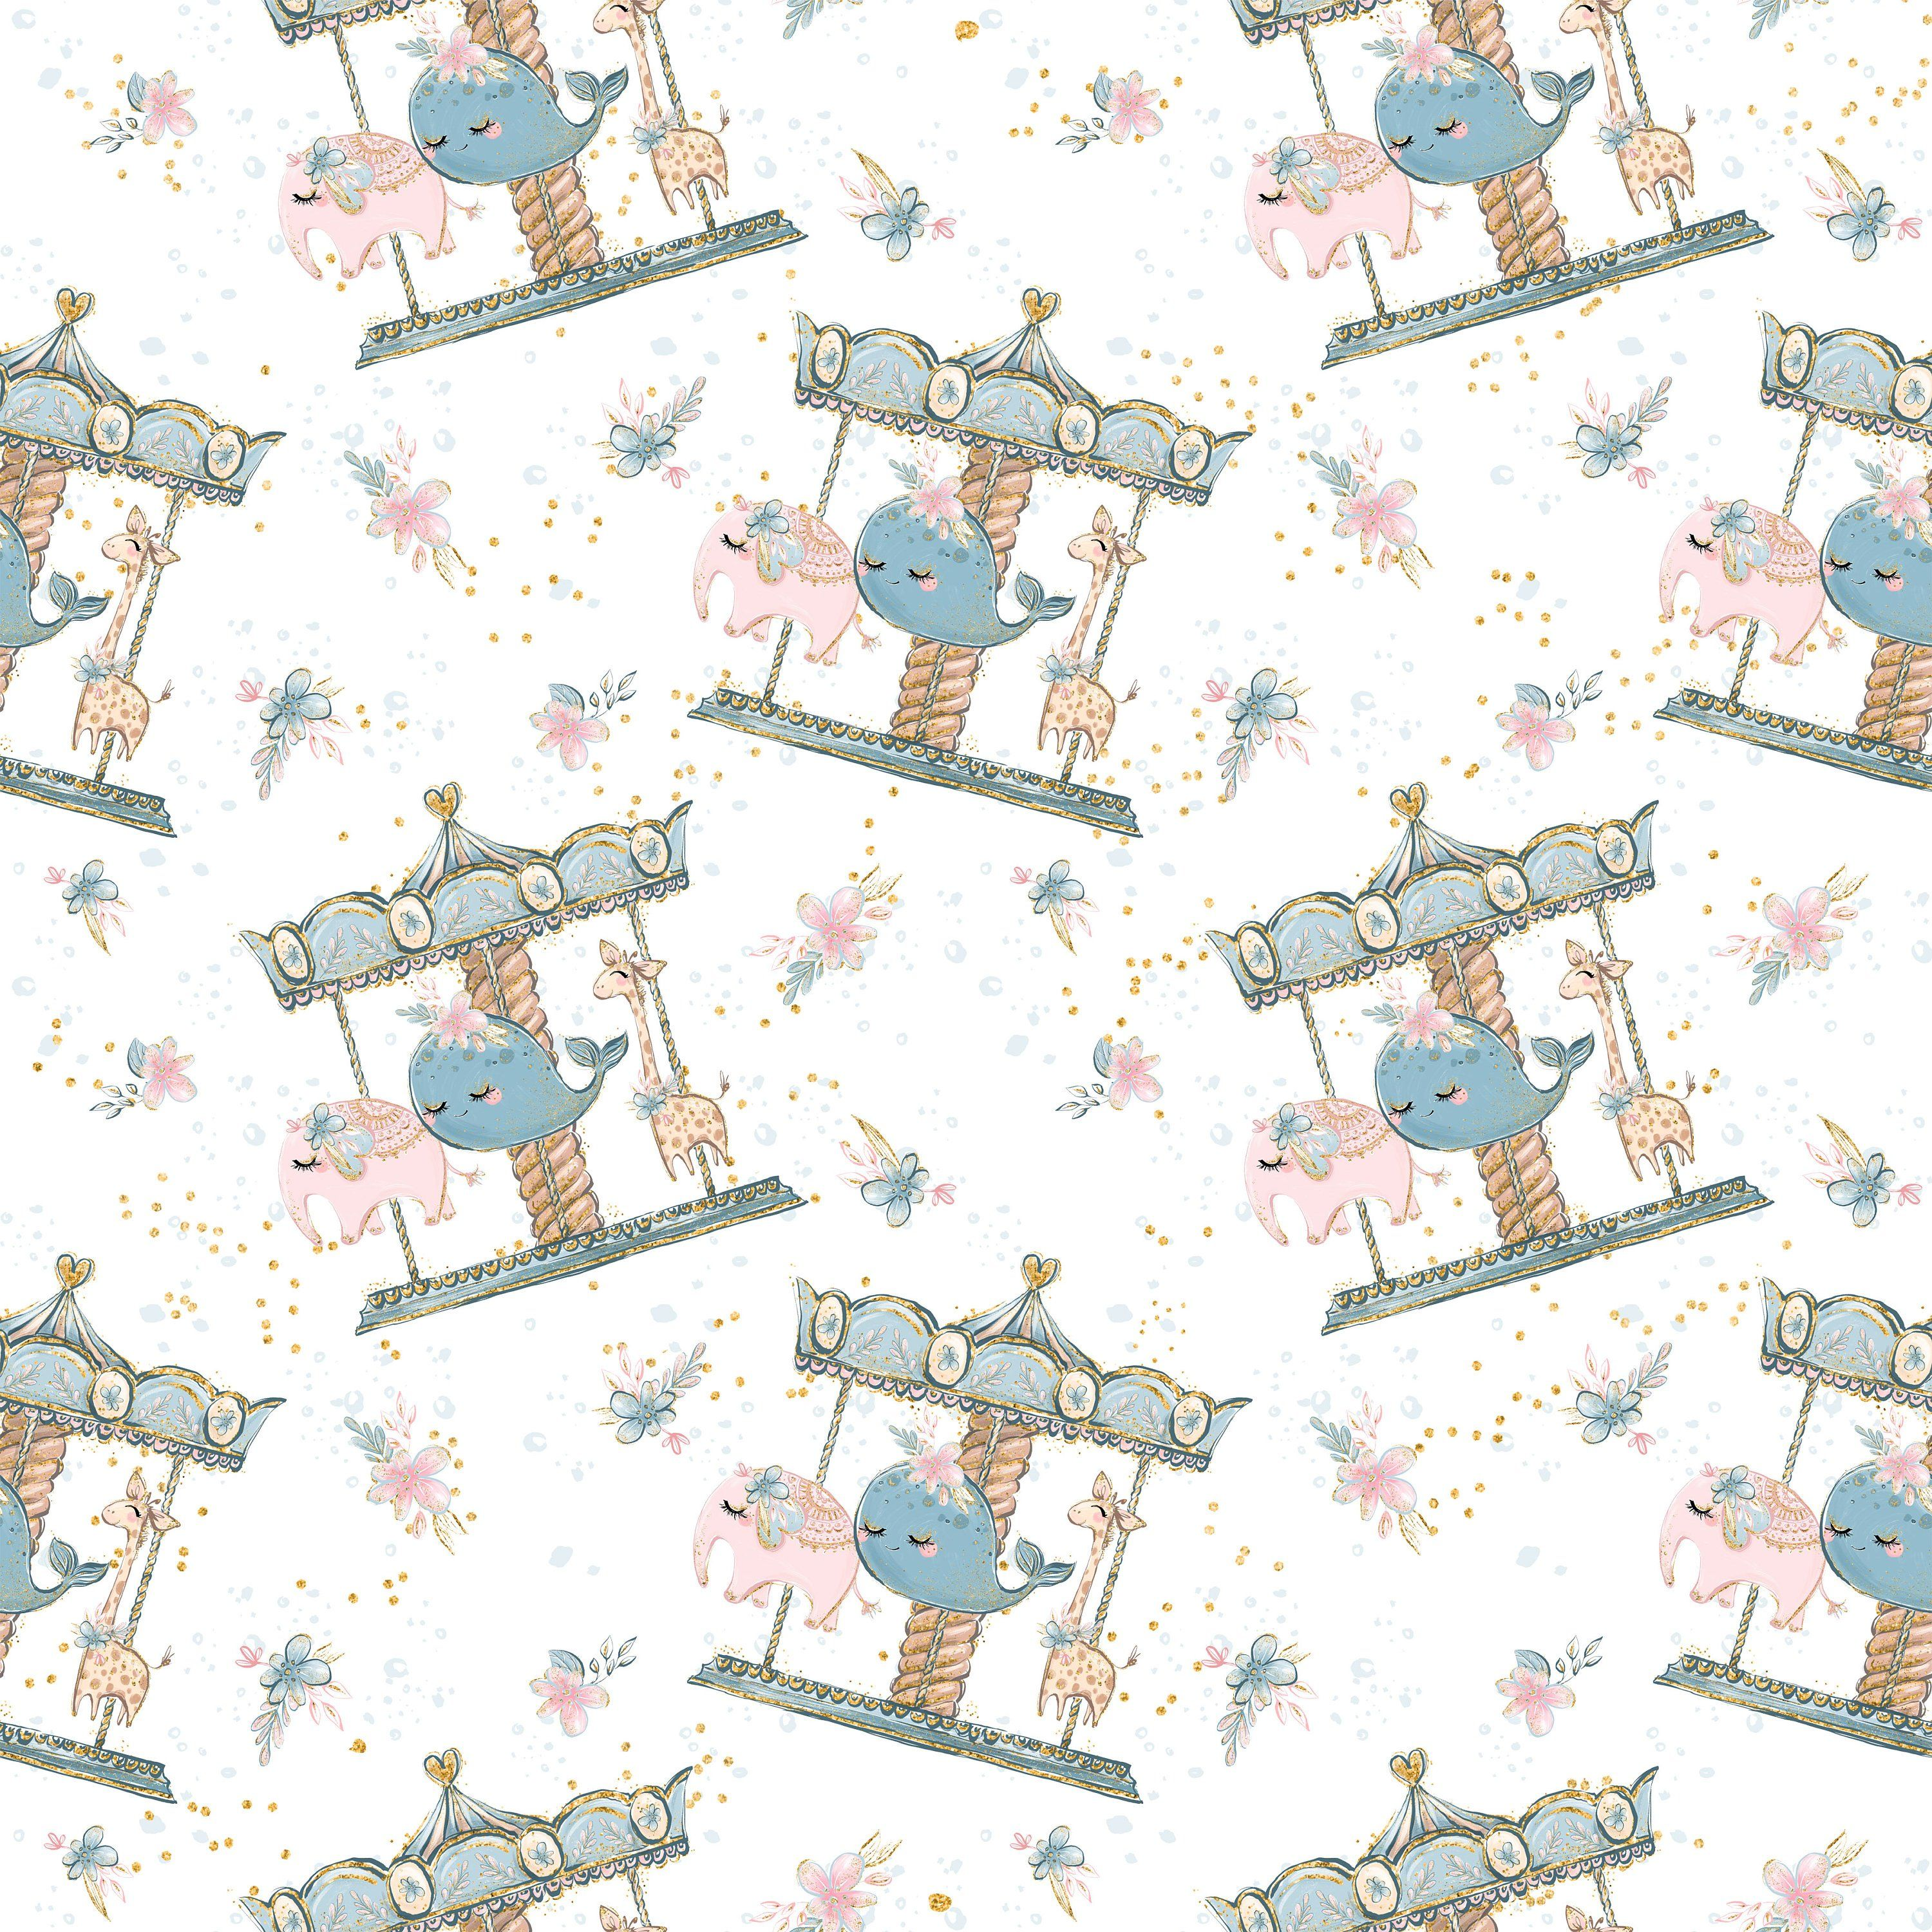 a511844adf7 Mother day fabric, elephant fabric, giraffe fabric, whale fabric, cotton  fabric, knit fabric, fabric by the yard, mother day prints, florals